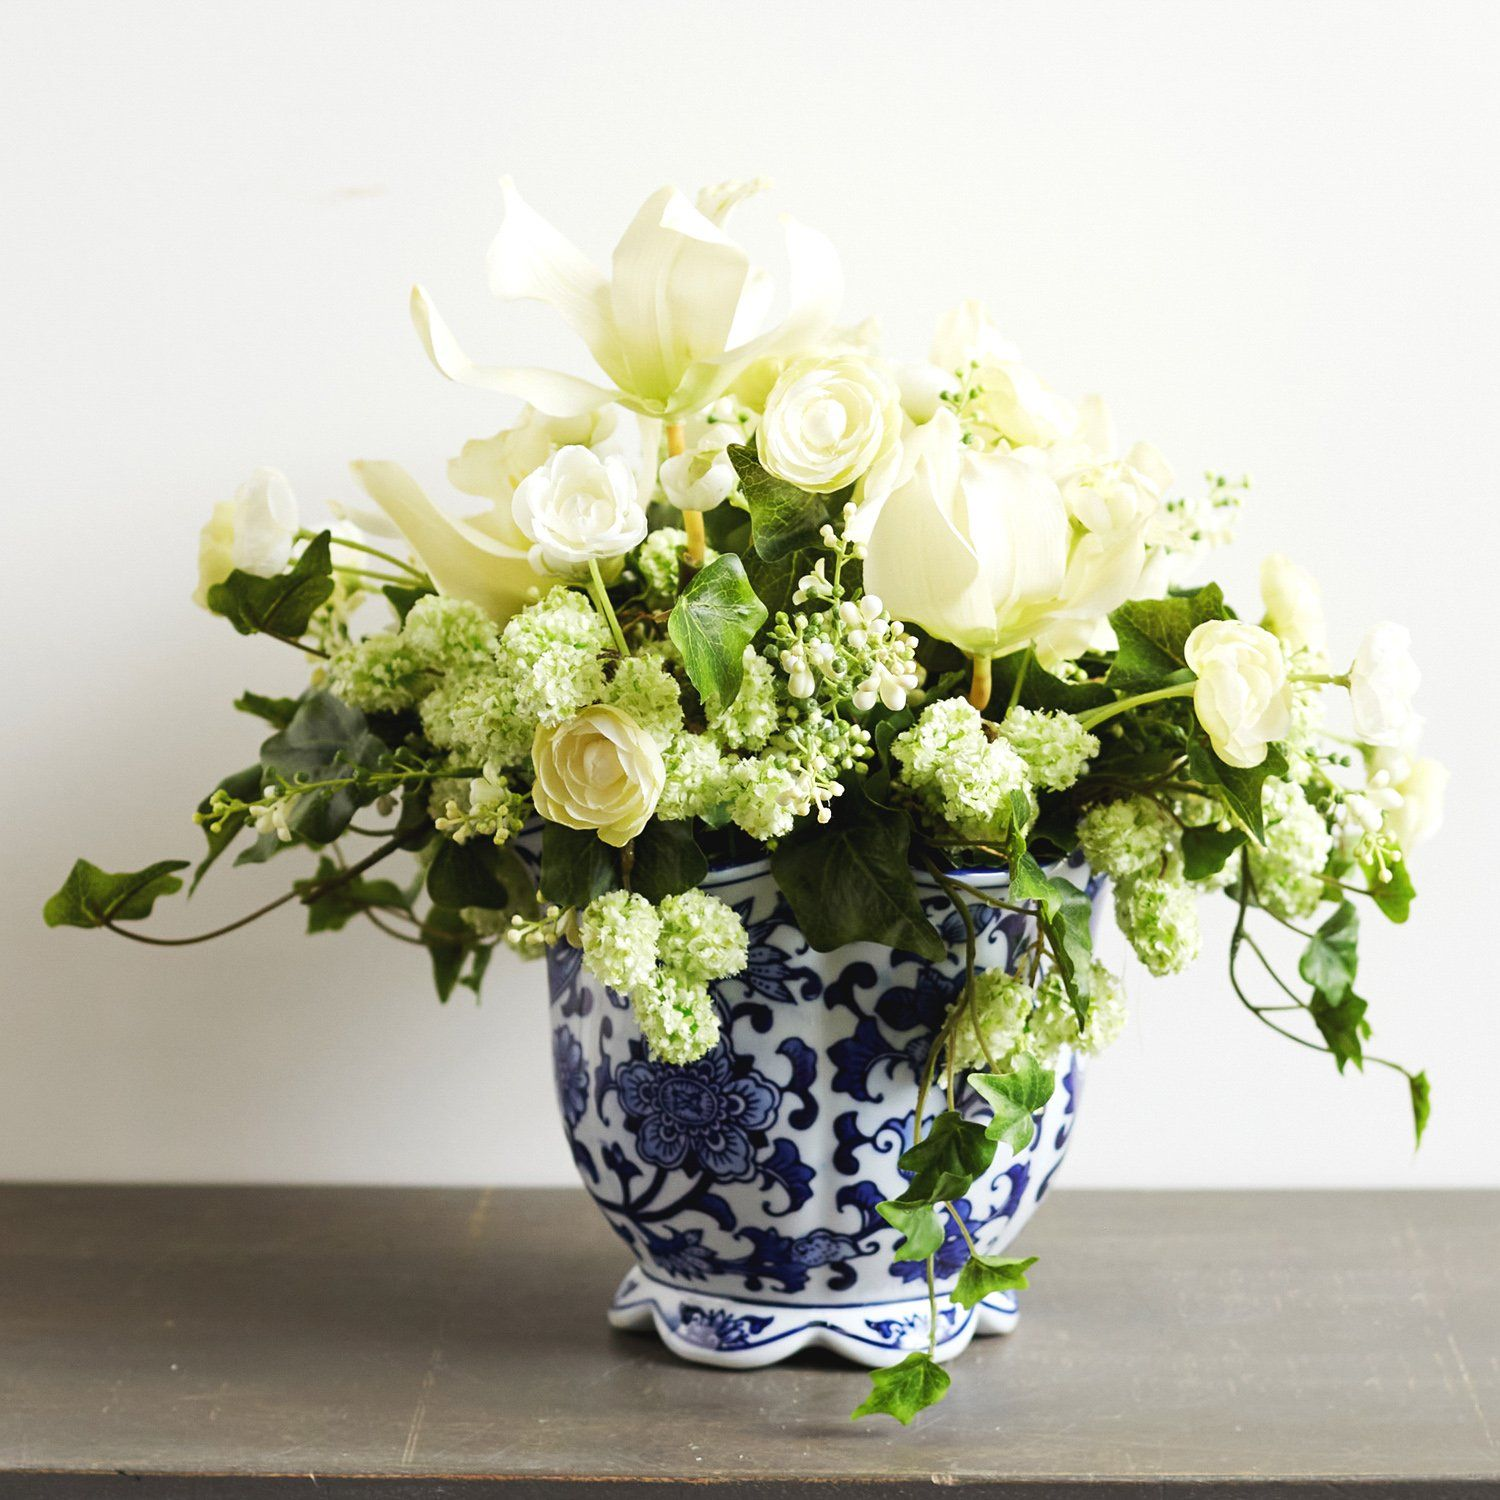 Cream Ranunculus Orchid Green Snowball Everyday Floral Arrangement In Blue And White Chinoiserie Jardiniere Pot White Flower Arrangements Spring Floral Arrangements Floral Arrangements